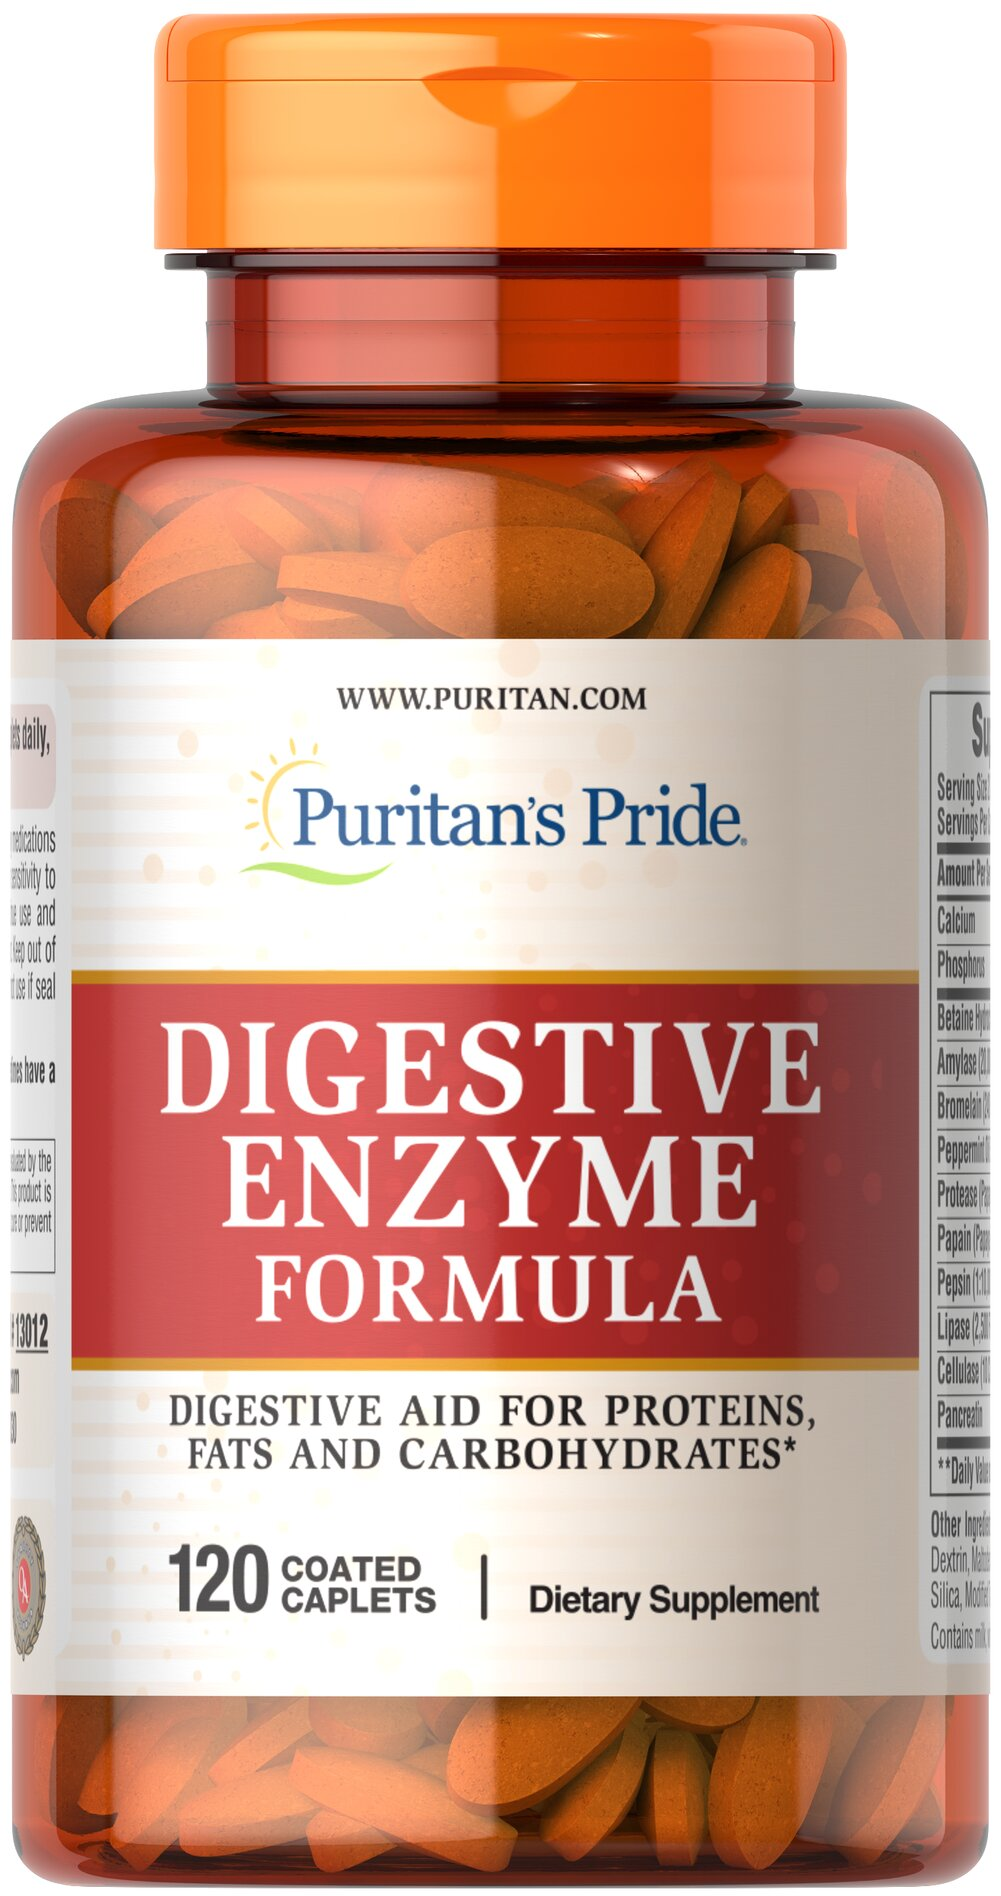 Super Strength Multi Enzyme <p>Enzymes break down the nutritional components of proteins, fats and carbohydrates, making these nutrients available for the body's energy needs, cell growth and other vital functions.** This holistically balanced blend is an enzyme formula that can be used to support proper digestion.**</p><p> Adults can take two (2) caplets, preferably with a meal.</p> 120 Caplets  $25.99